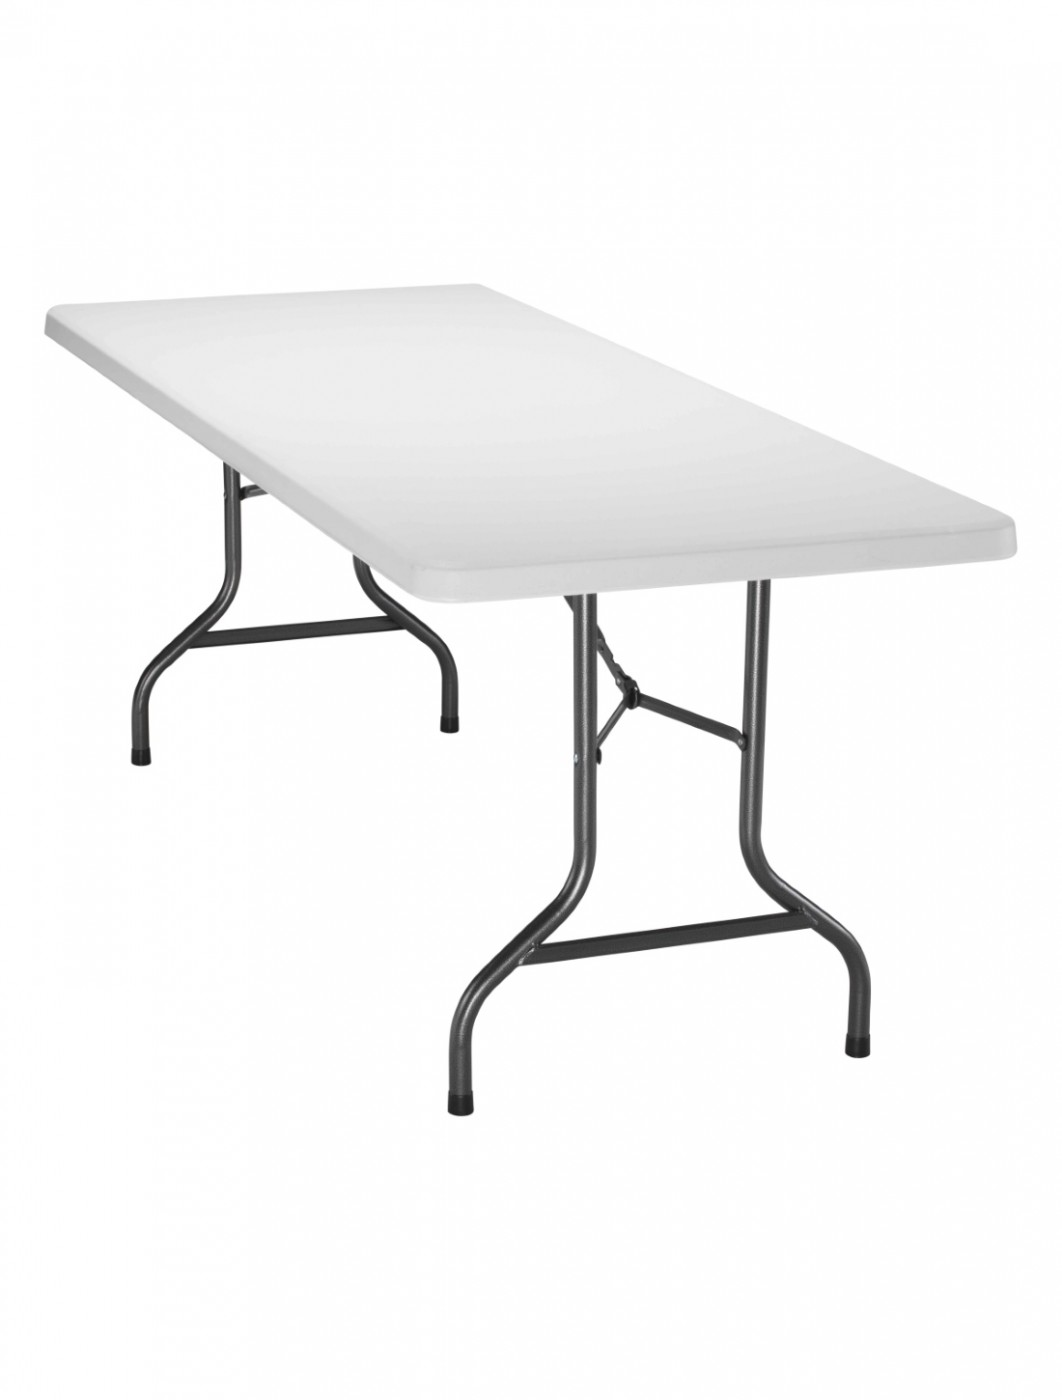 Folding Tables - TC Morph White Rectangular Folding Table OF0402WH